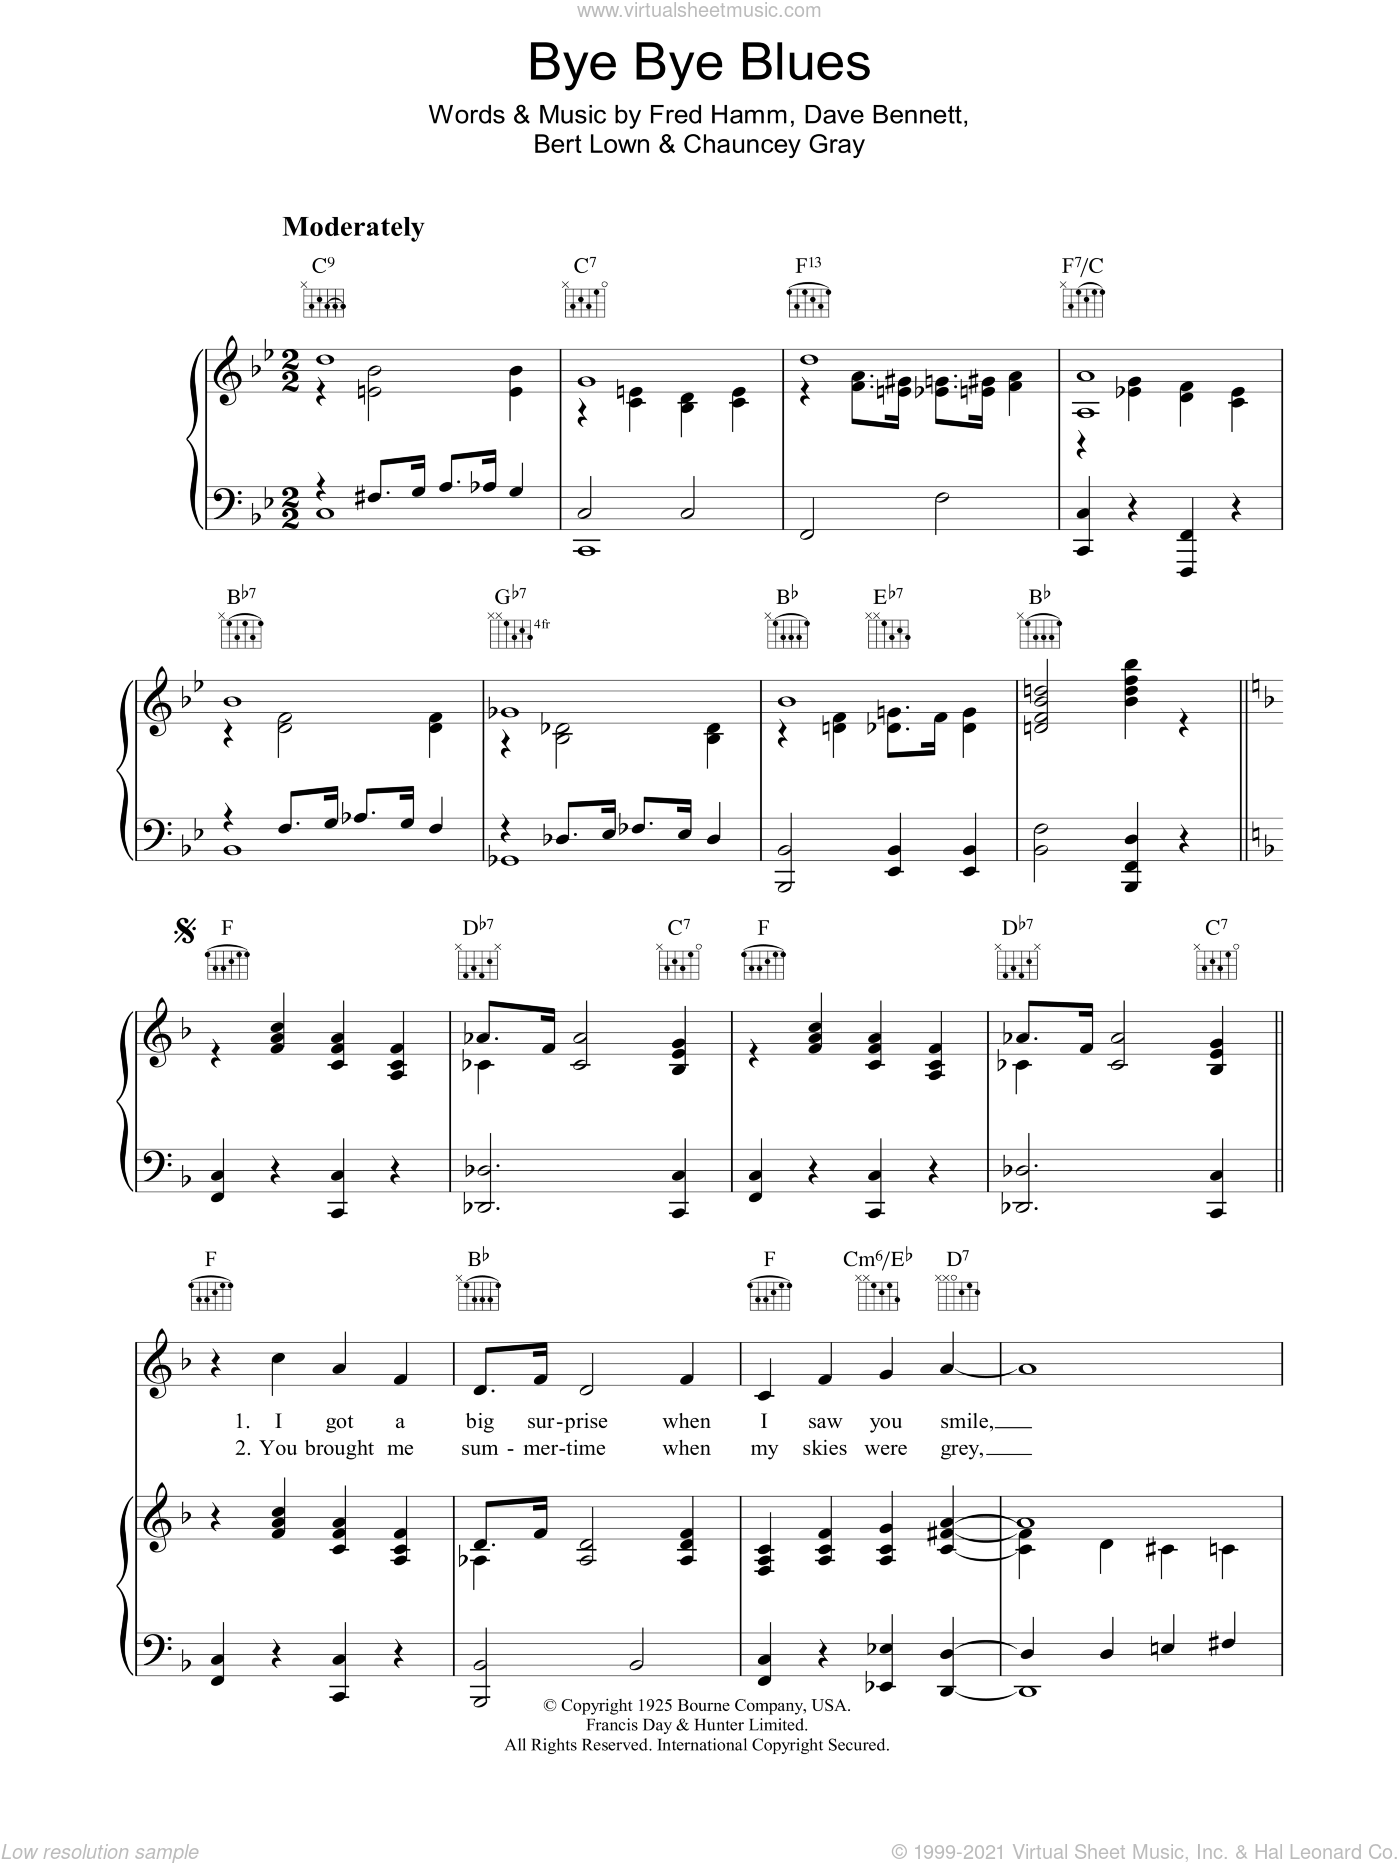 Bye Bye Blues sheet music for voice, piano or guitar by David Bennett and Fred Hamm. Score Image Preview.